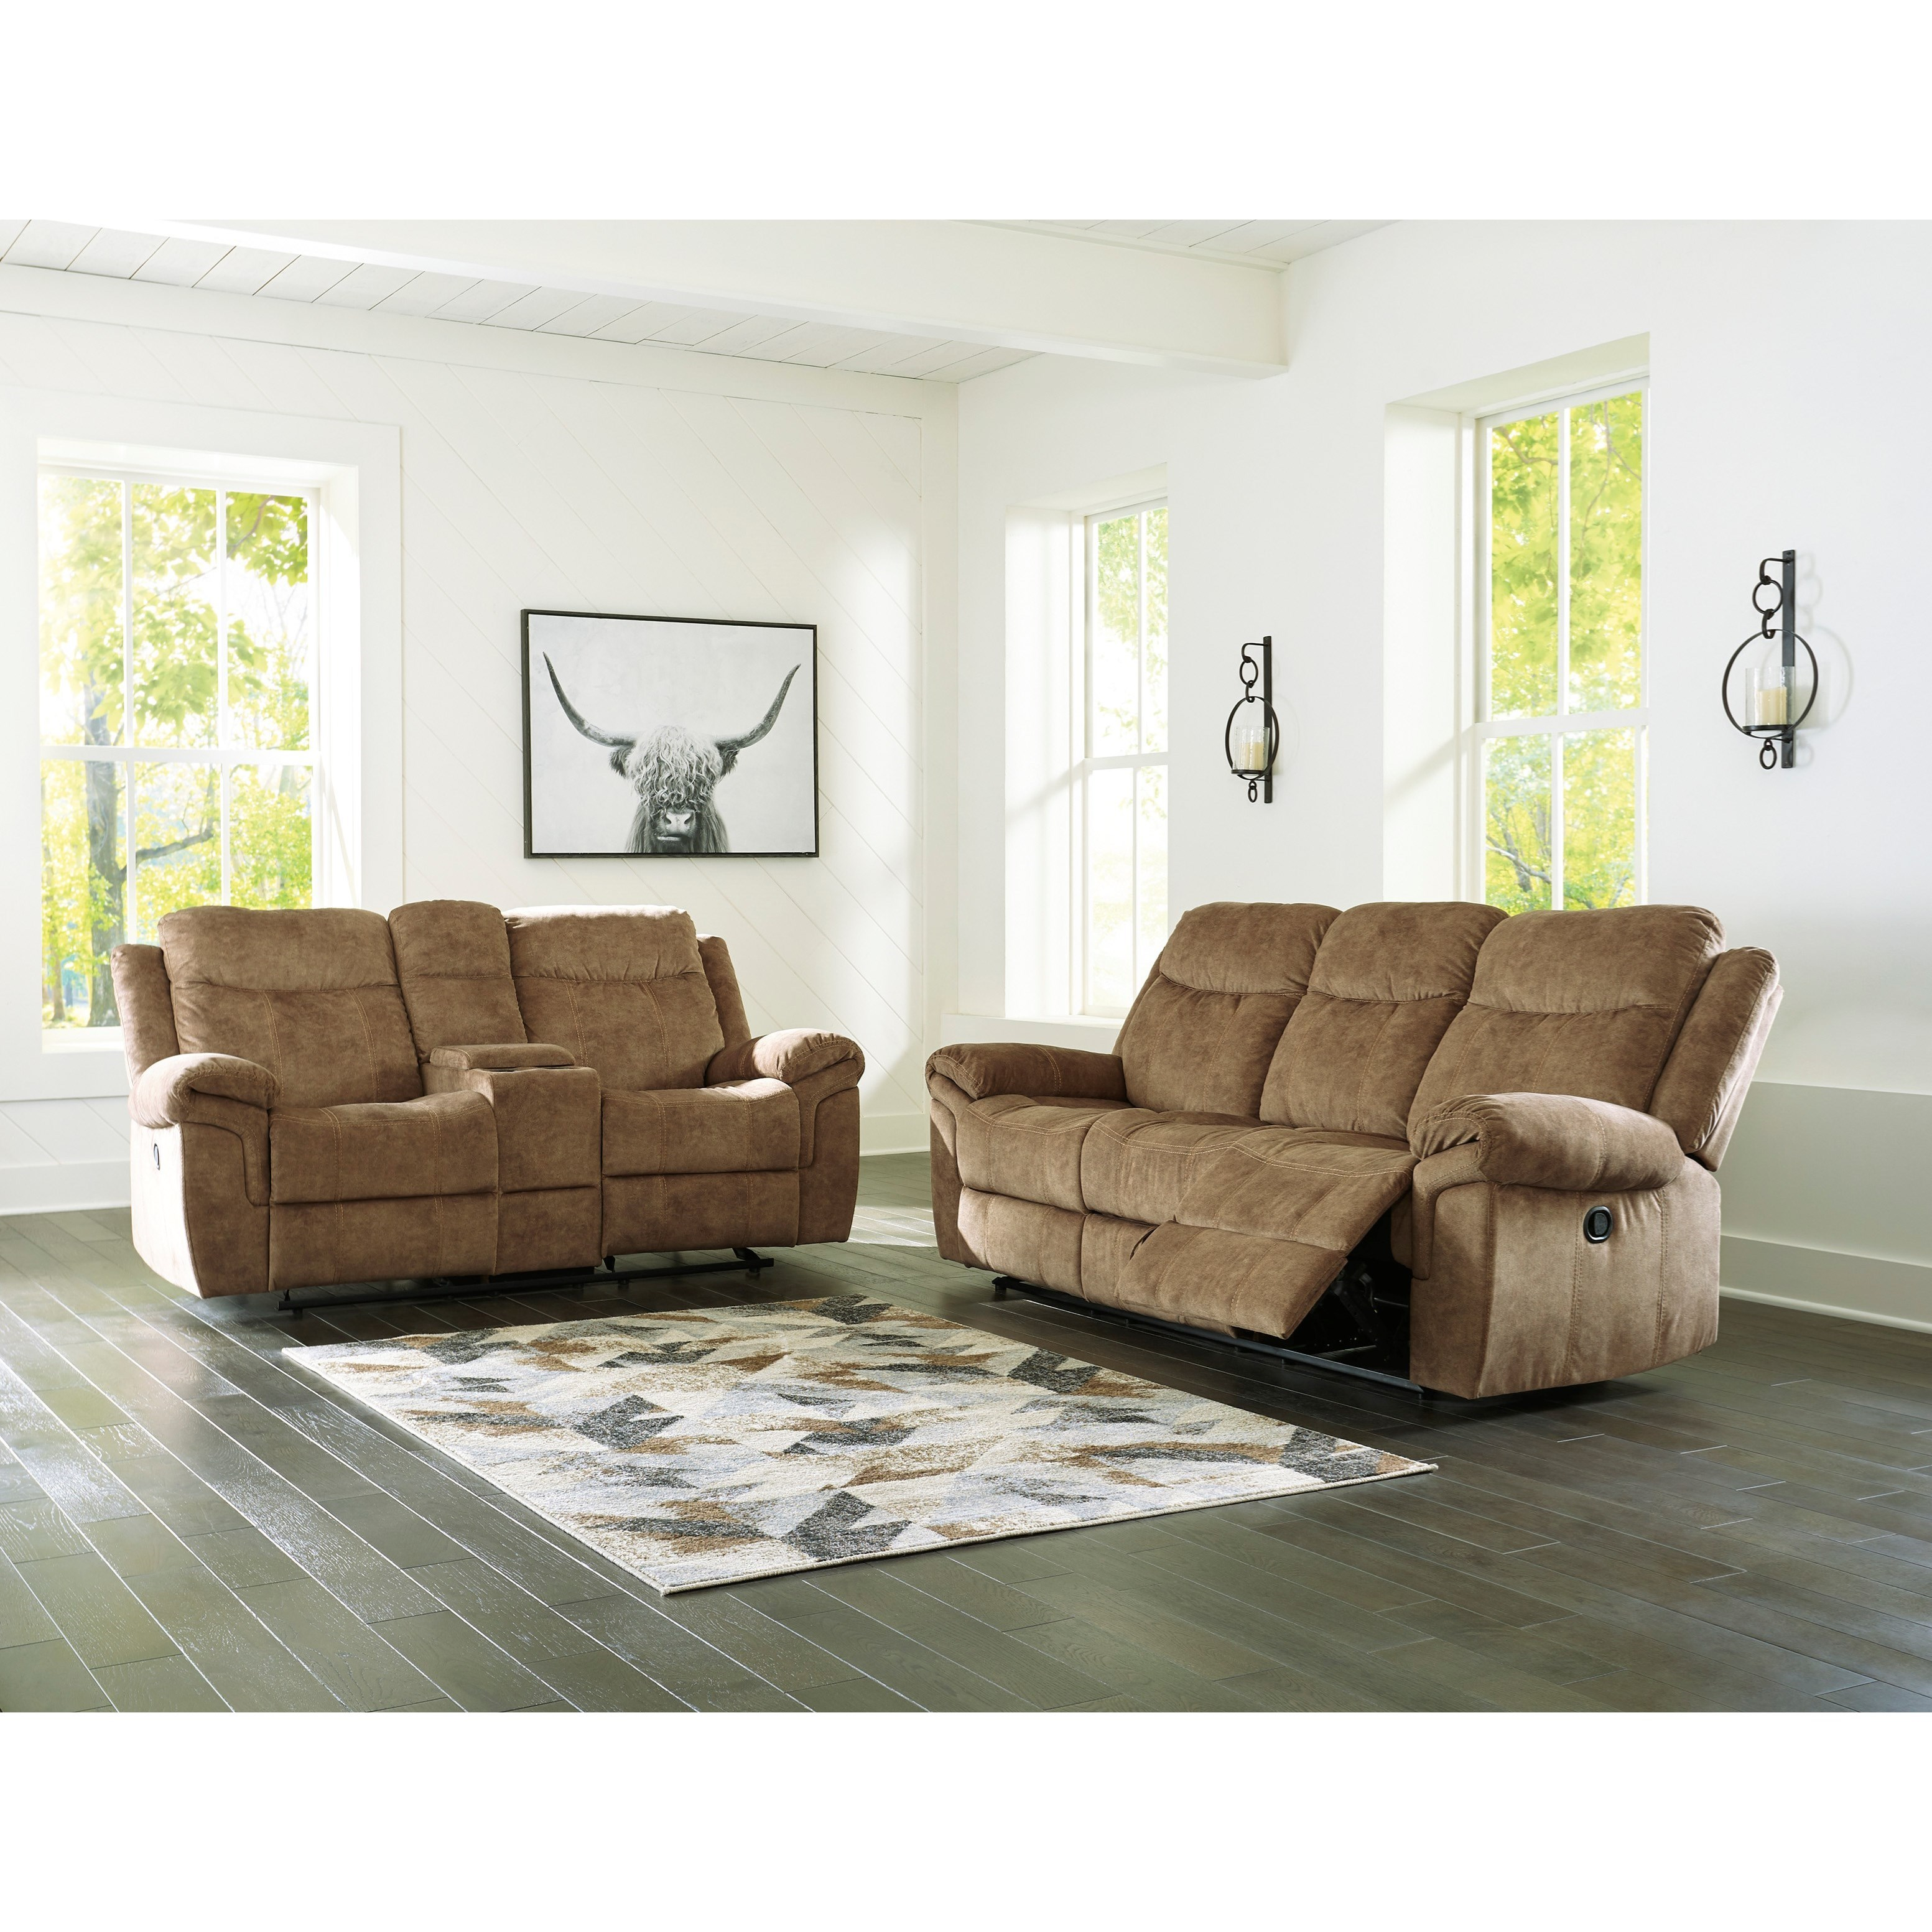 Huddle-Up Reclining Living Room Group by Signature Design by Ashley at Northeast Factory Direct